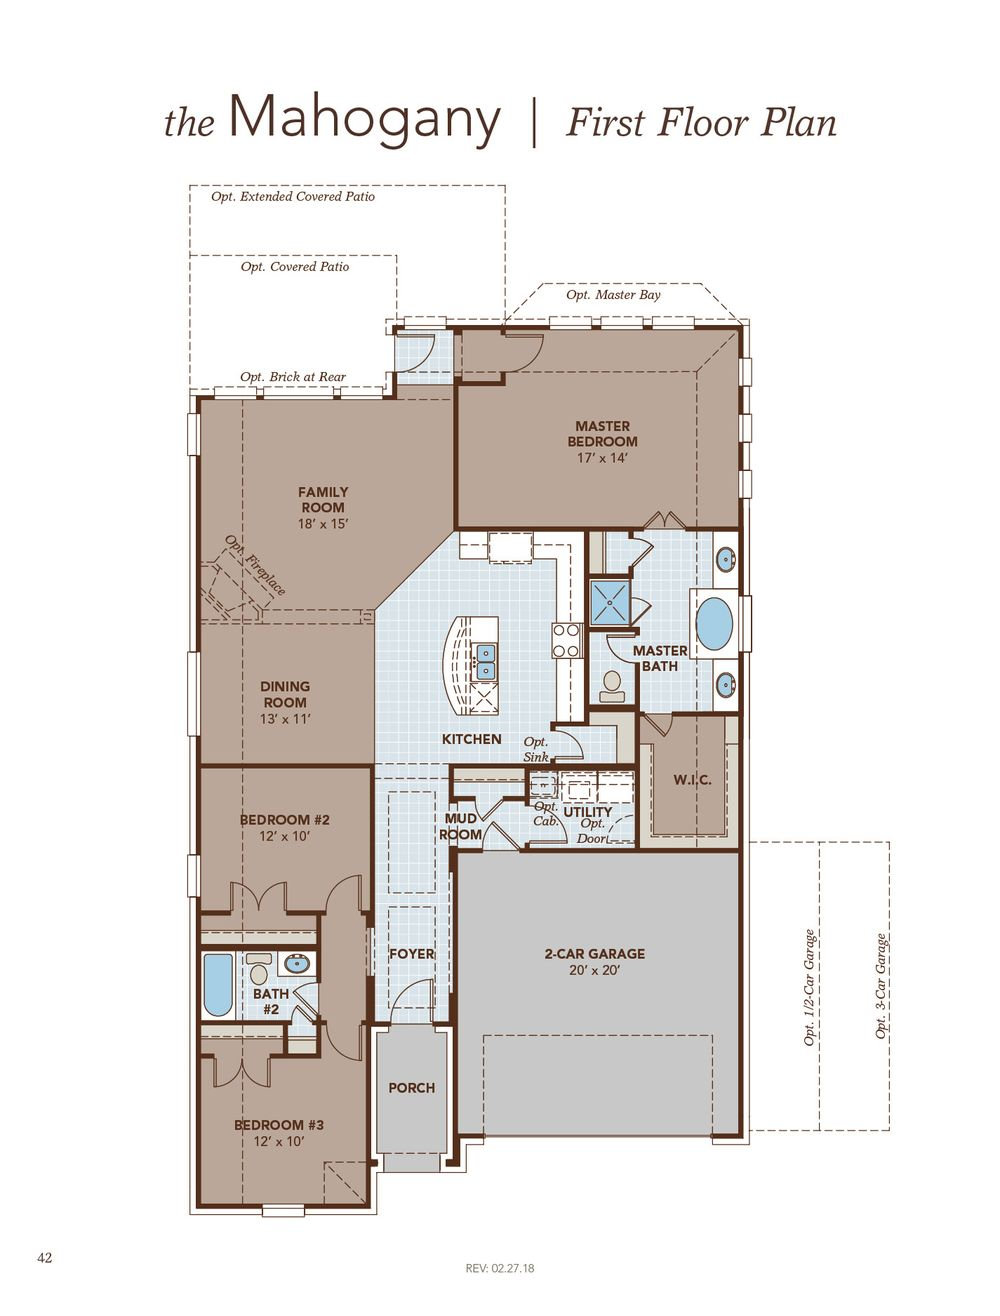 Mahogany Home Plan by Gehan Homes in The Park at Blackhawk Premier – Weiss Homes Floor Plans